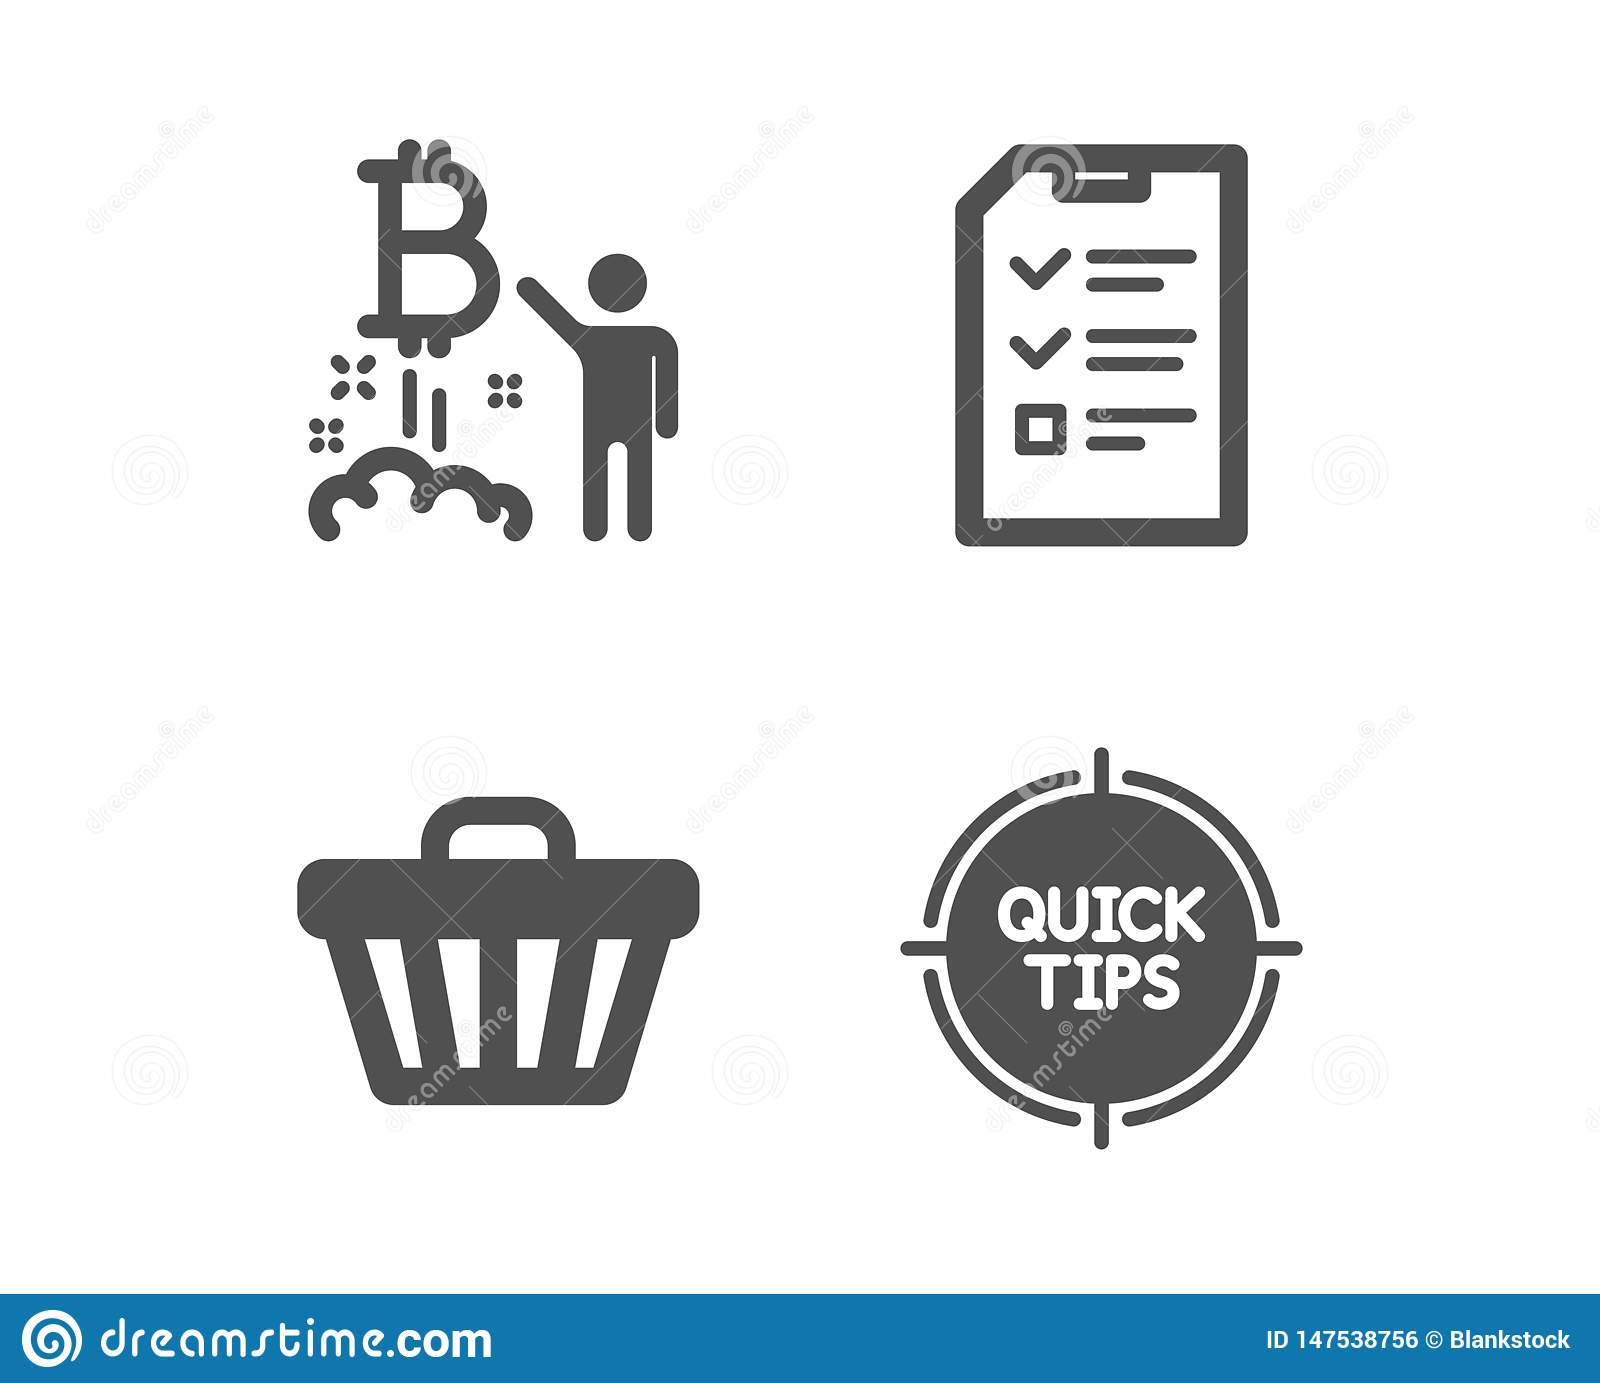 cryptocurrency buying tips